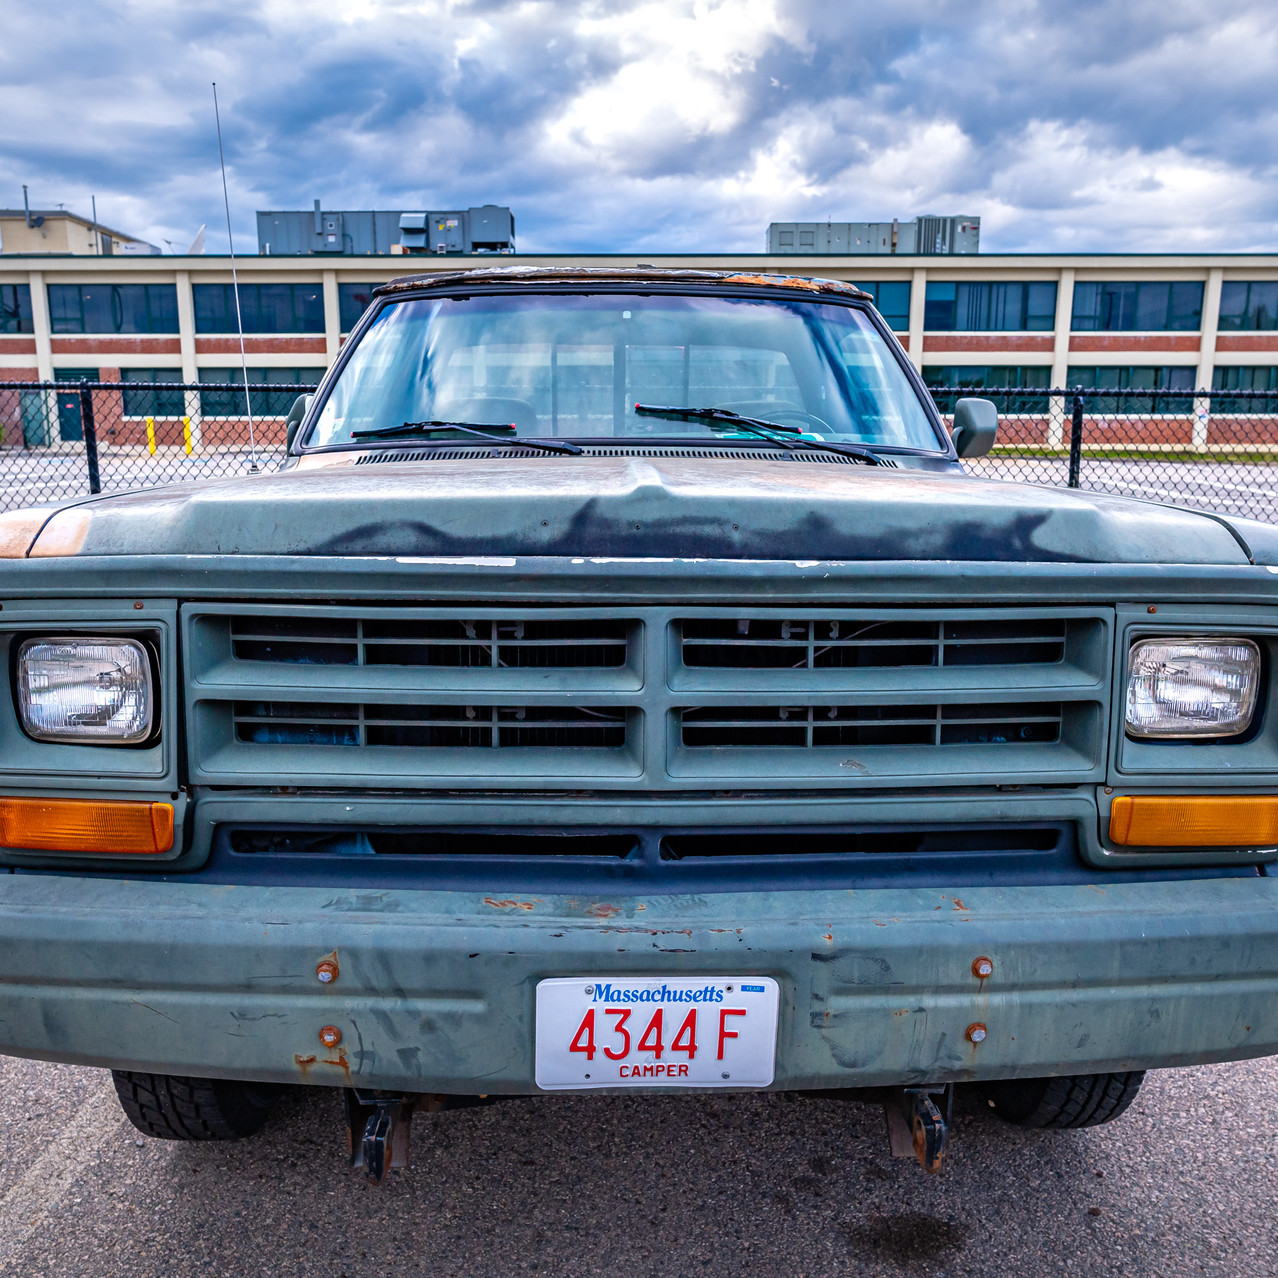 Parked in the old WB production facilities parking lot in Dorchester. Pickup truck painted in camouflage.